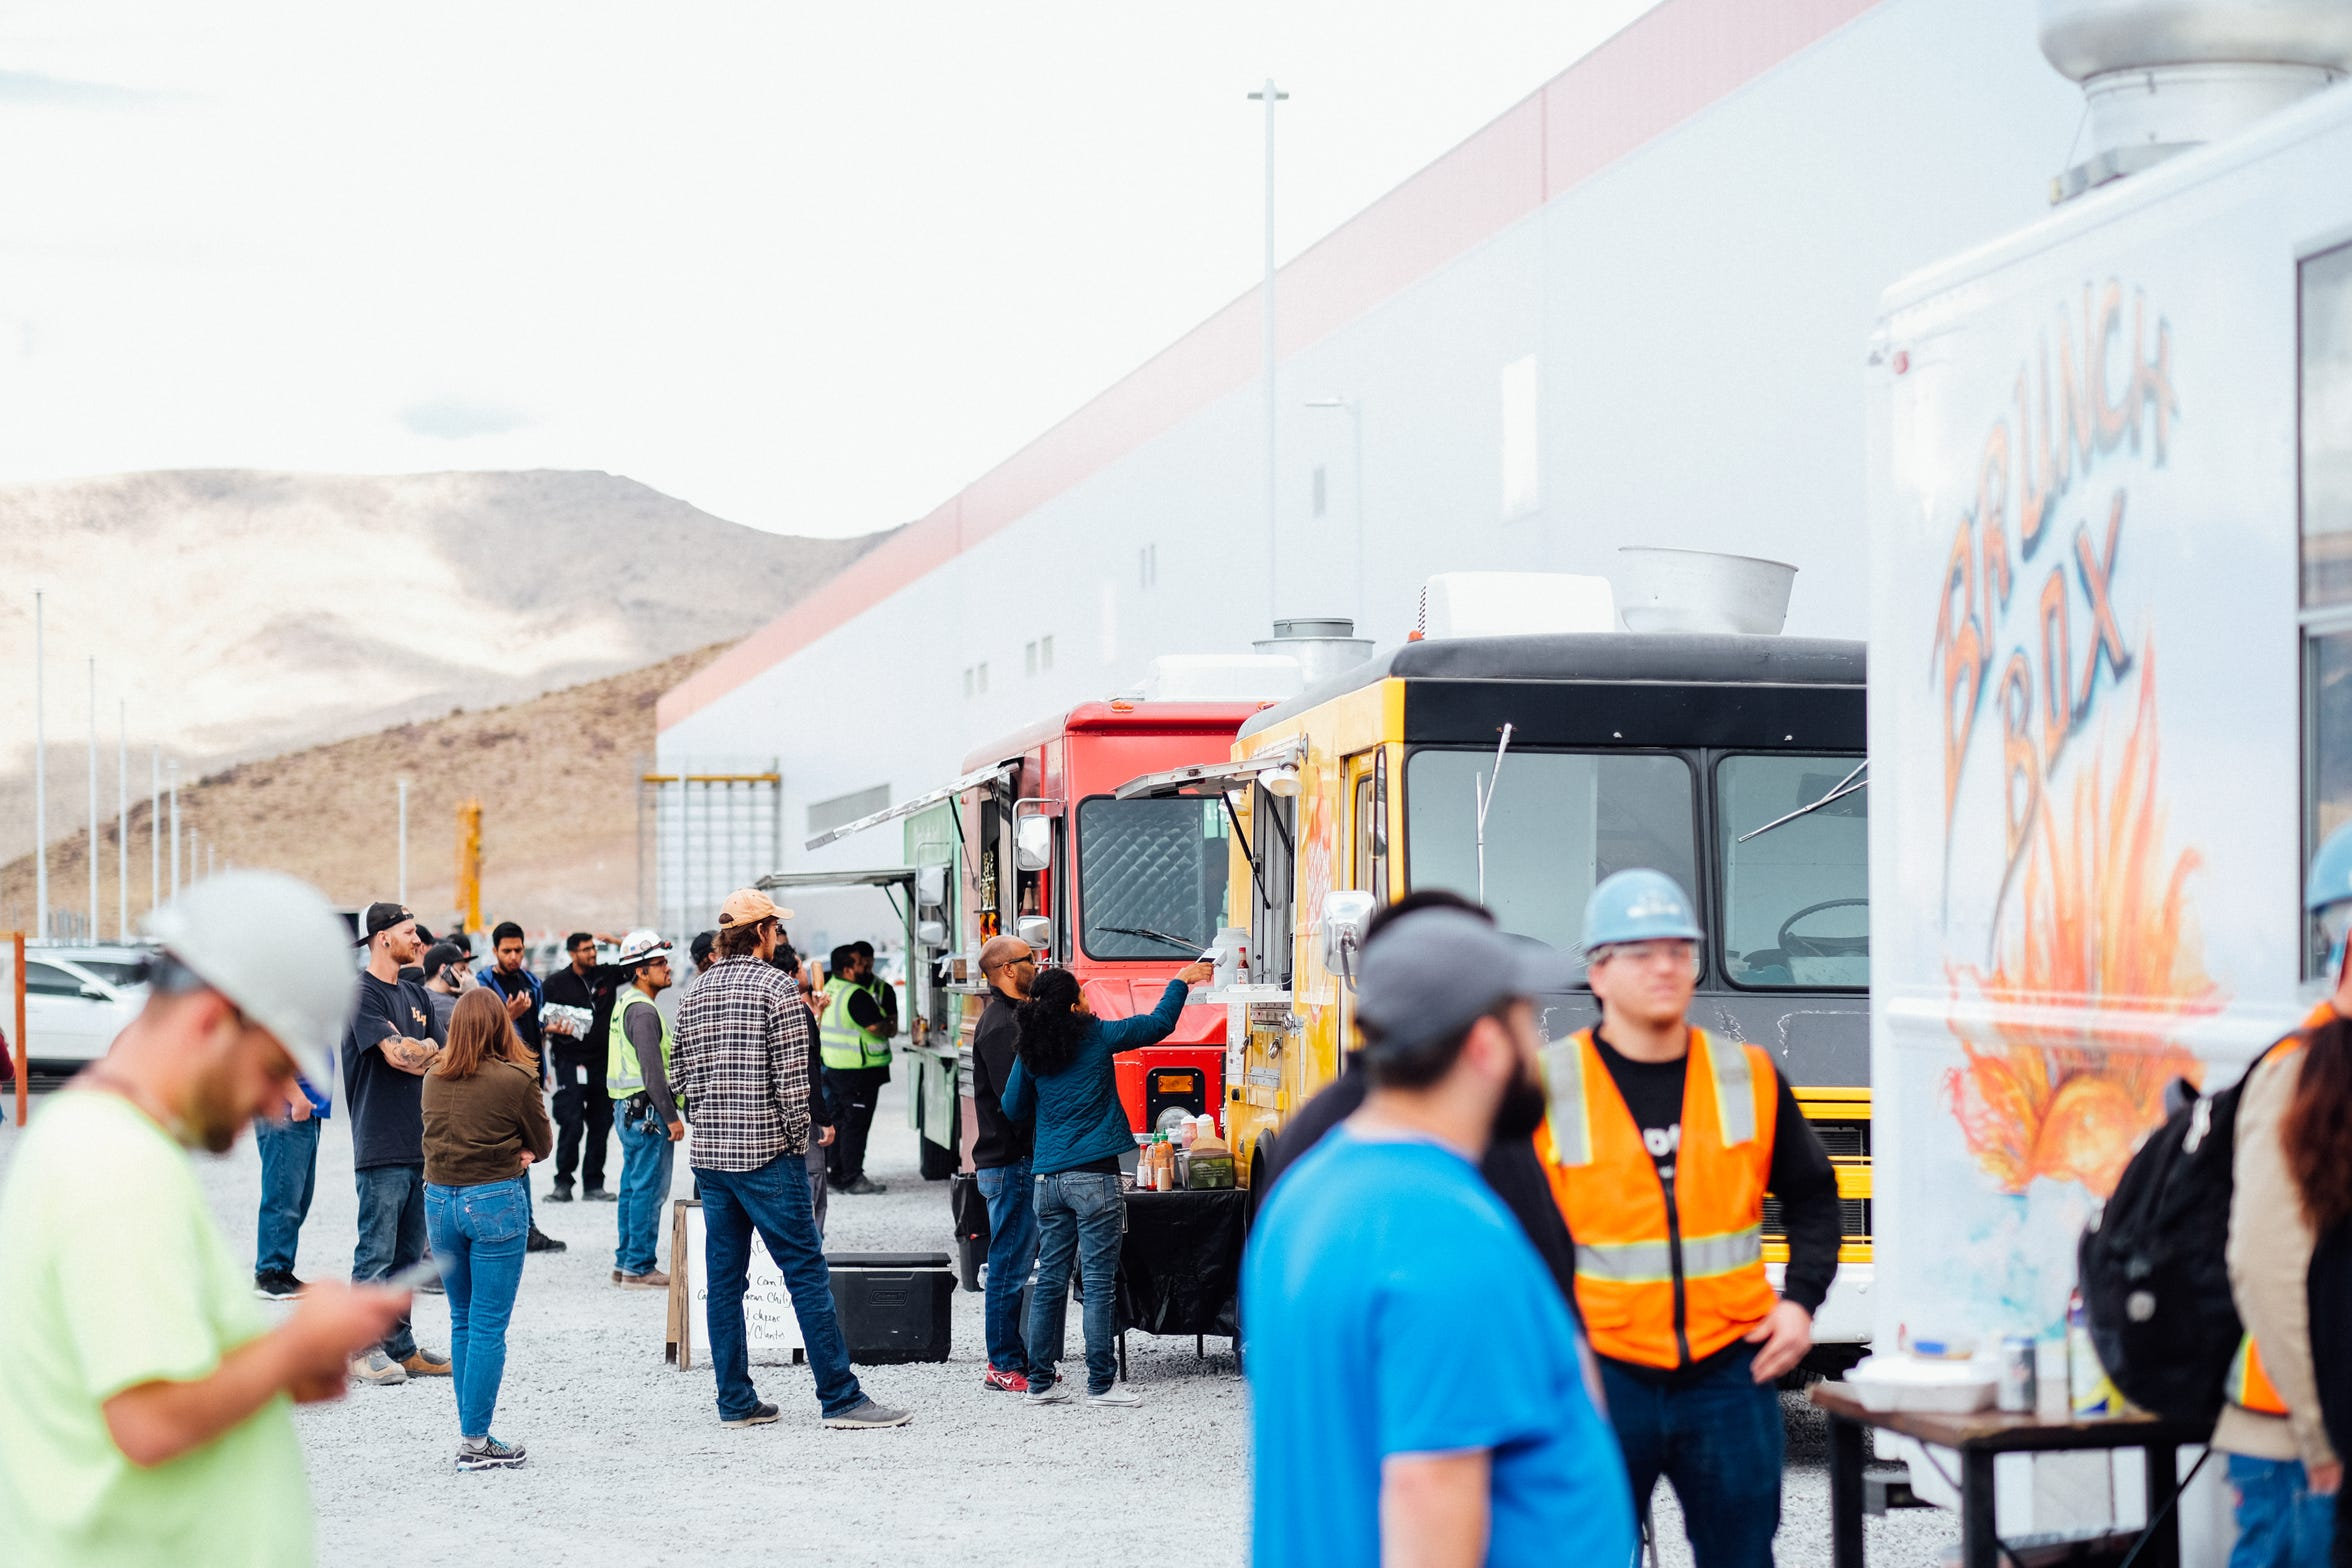 About 20 food trucks rotate regularly at the Tesla Gigafactory east of Reno, helping to feed many of the 3,000-plus employees.